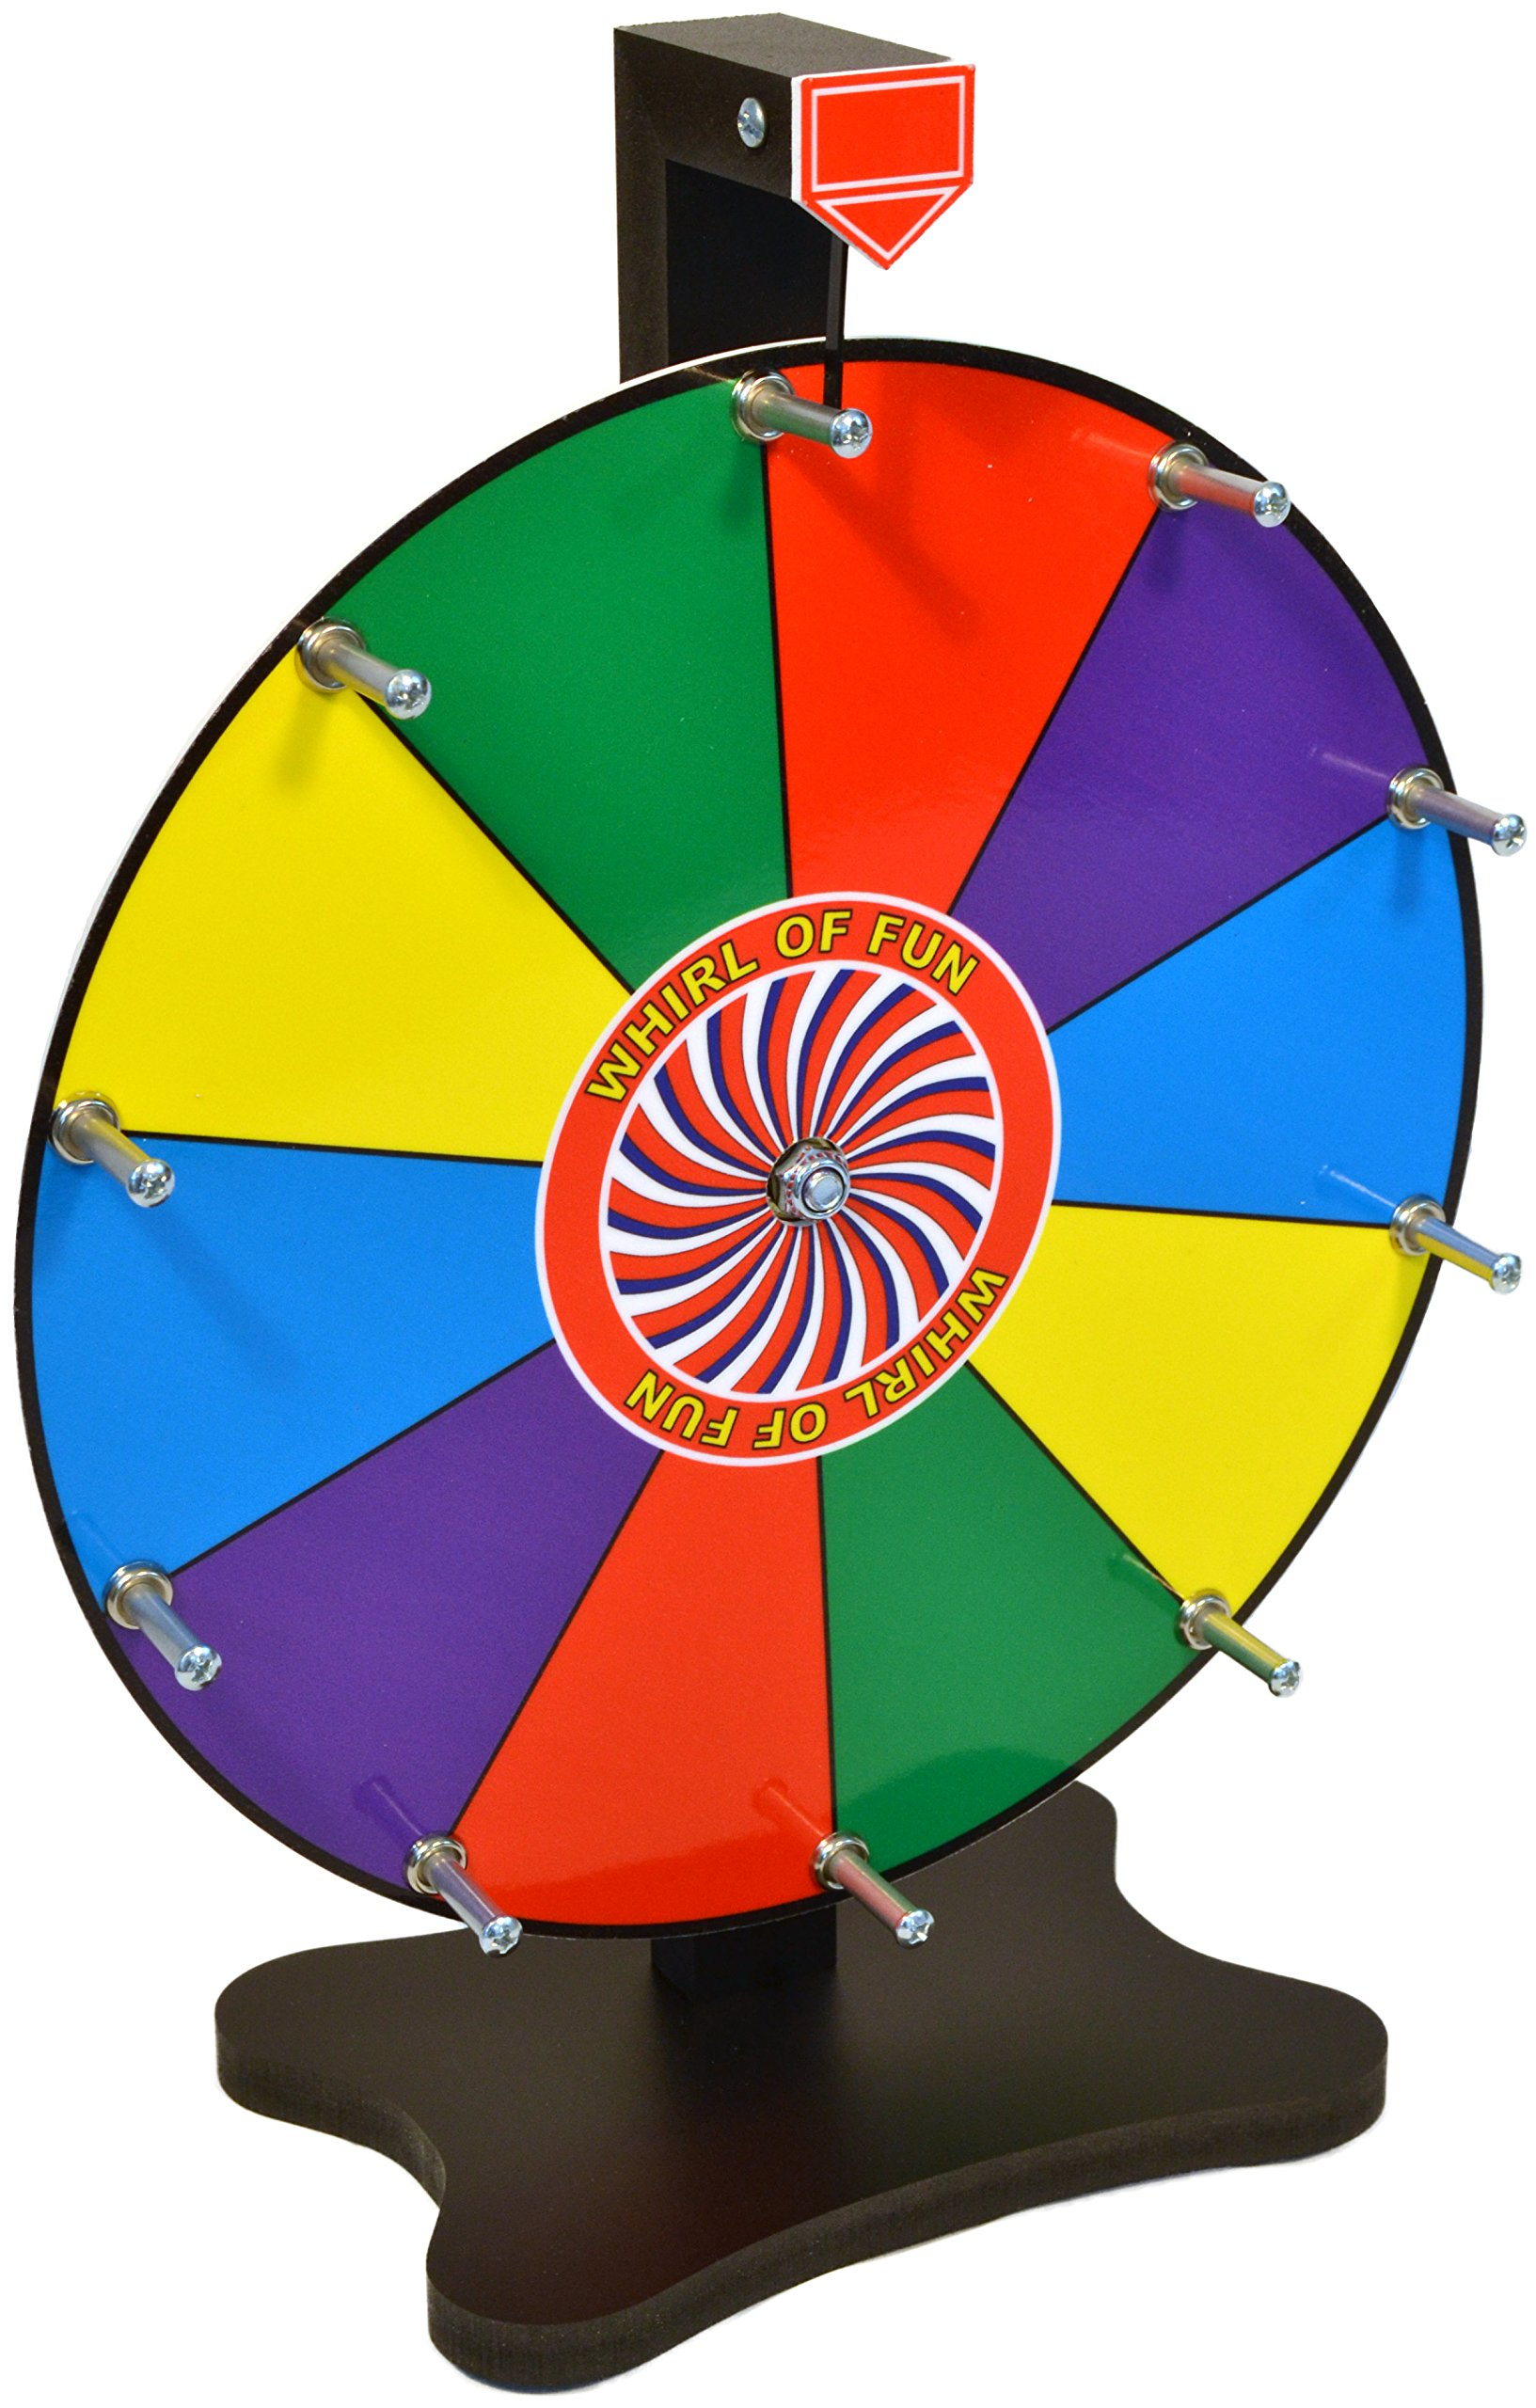 Moon Glow Sports Prize Wheel 12 Inch-Tabletop Color Spinning Wheel with Stand, 10 Slots, Customize with Included Dry Erase Marker, Made in USA